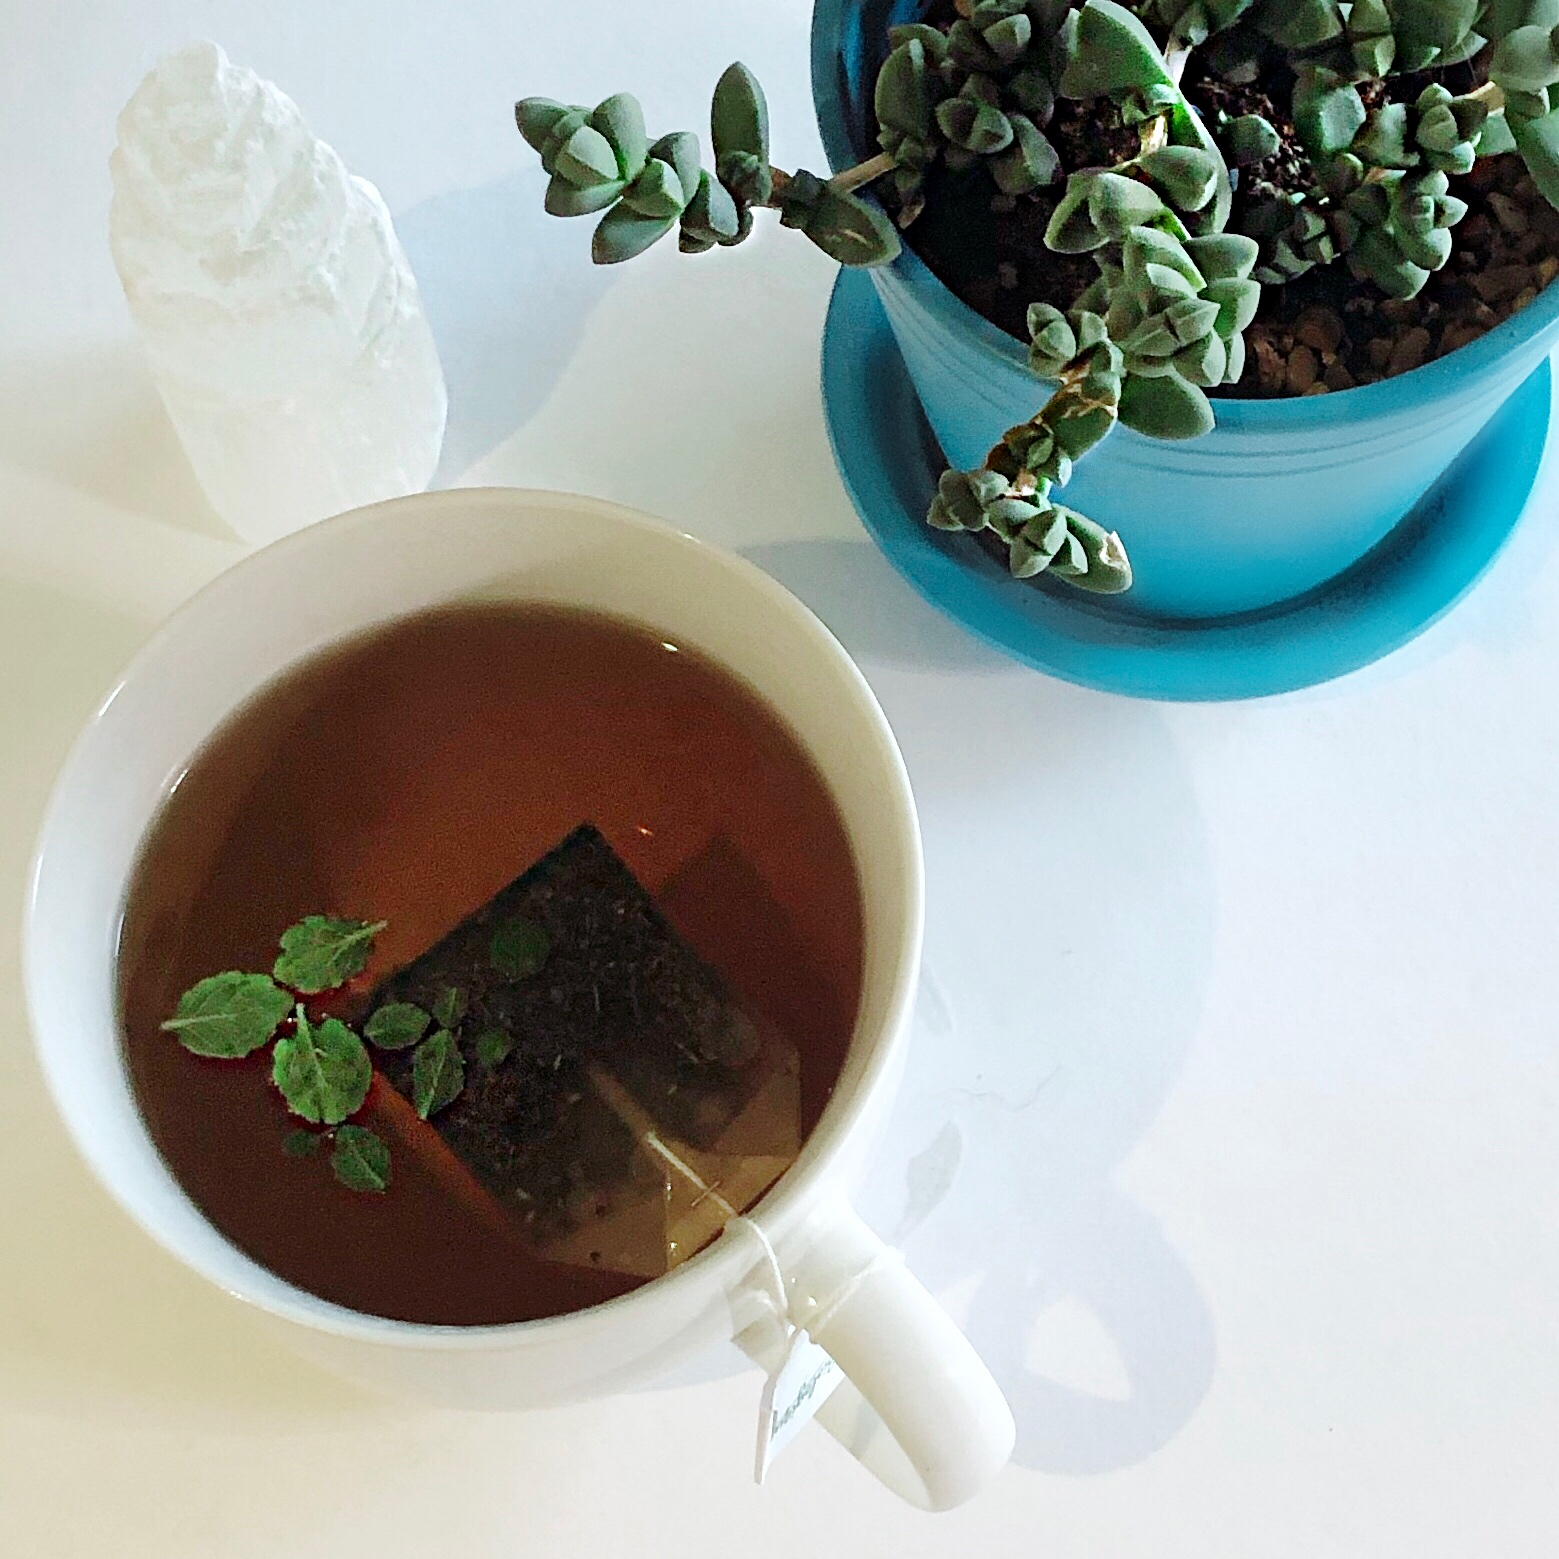 peppermint tea with a succulent and selenite crystal